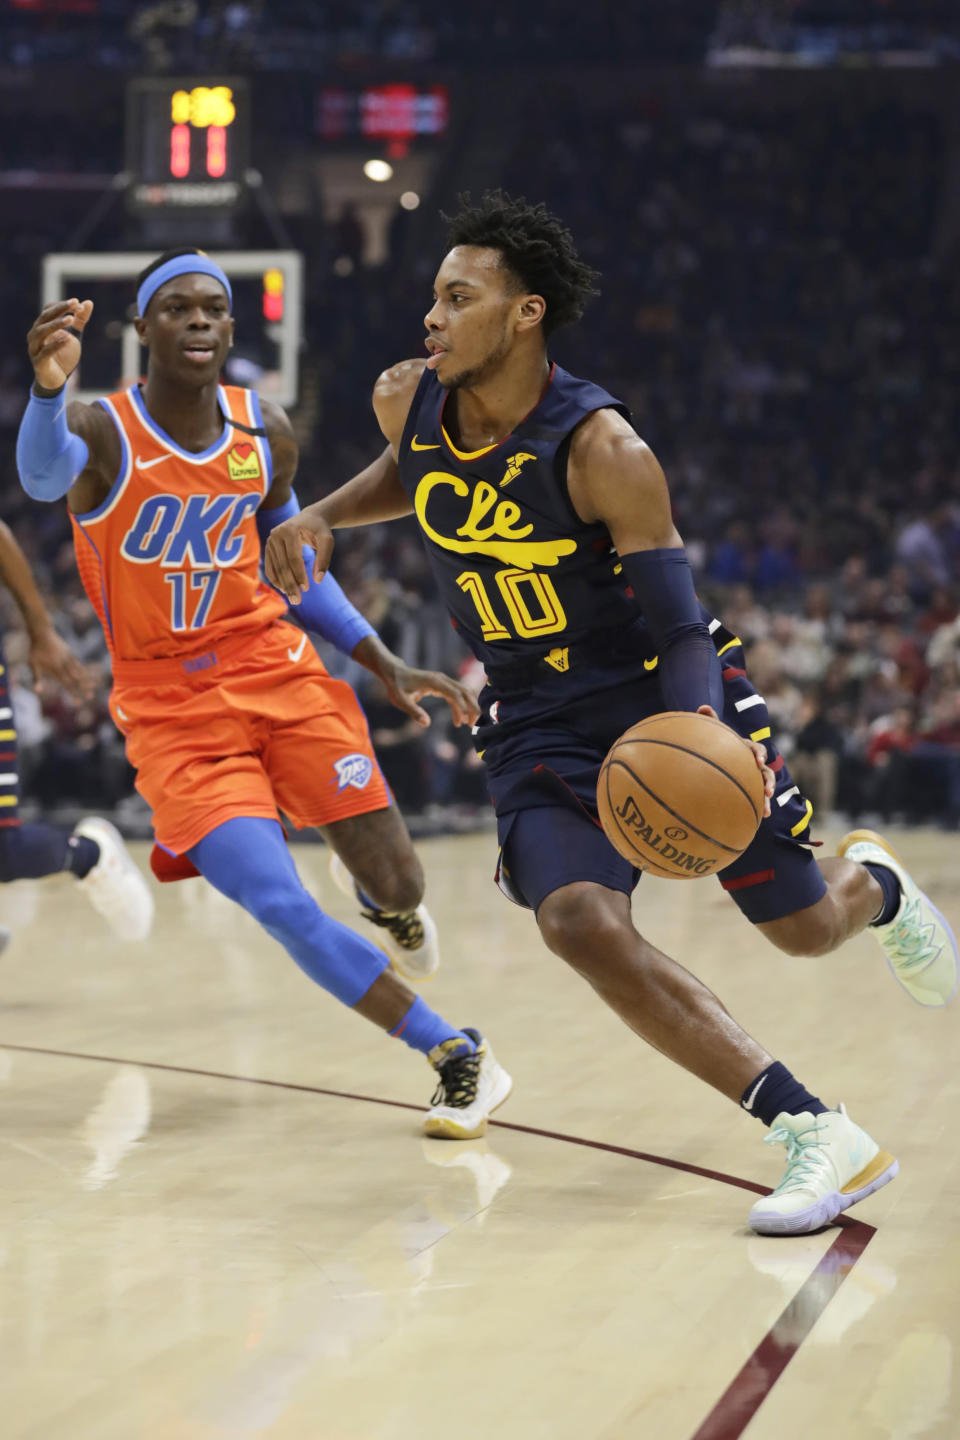 Cleveland Cavaliers' Darius Garland (10) drives past Oklahoma City Thunder's Dennis Schroder (17) in the first half of an NBA basketball game, Saturday, Jan. 4, 2020, in Cleveland. (AP Photo/Tony Dejak)